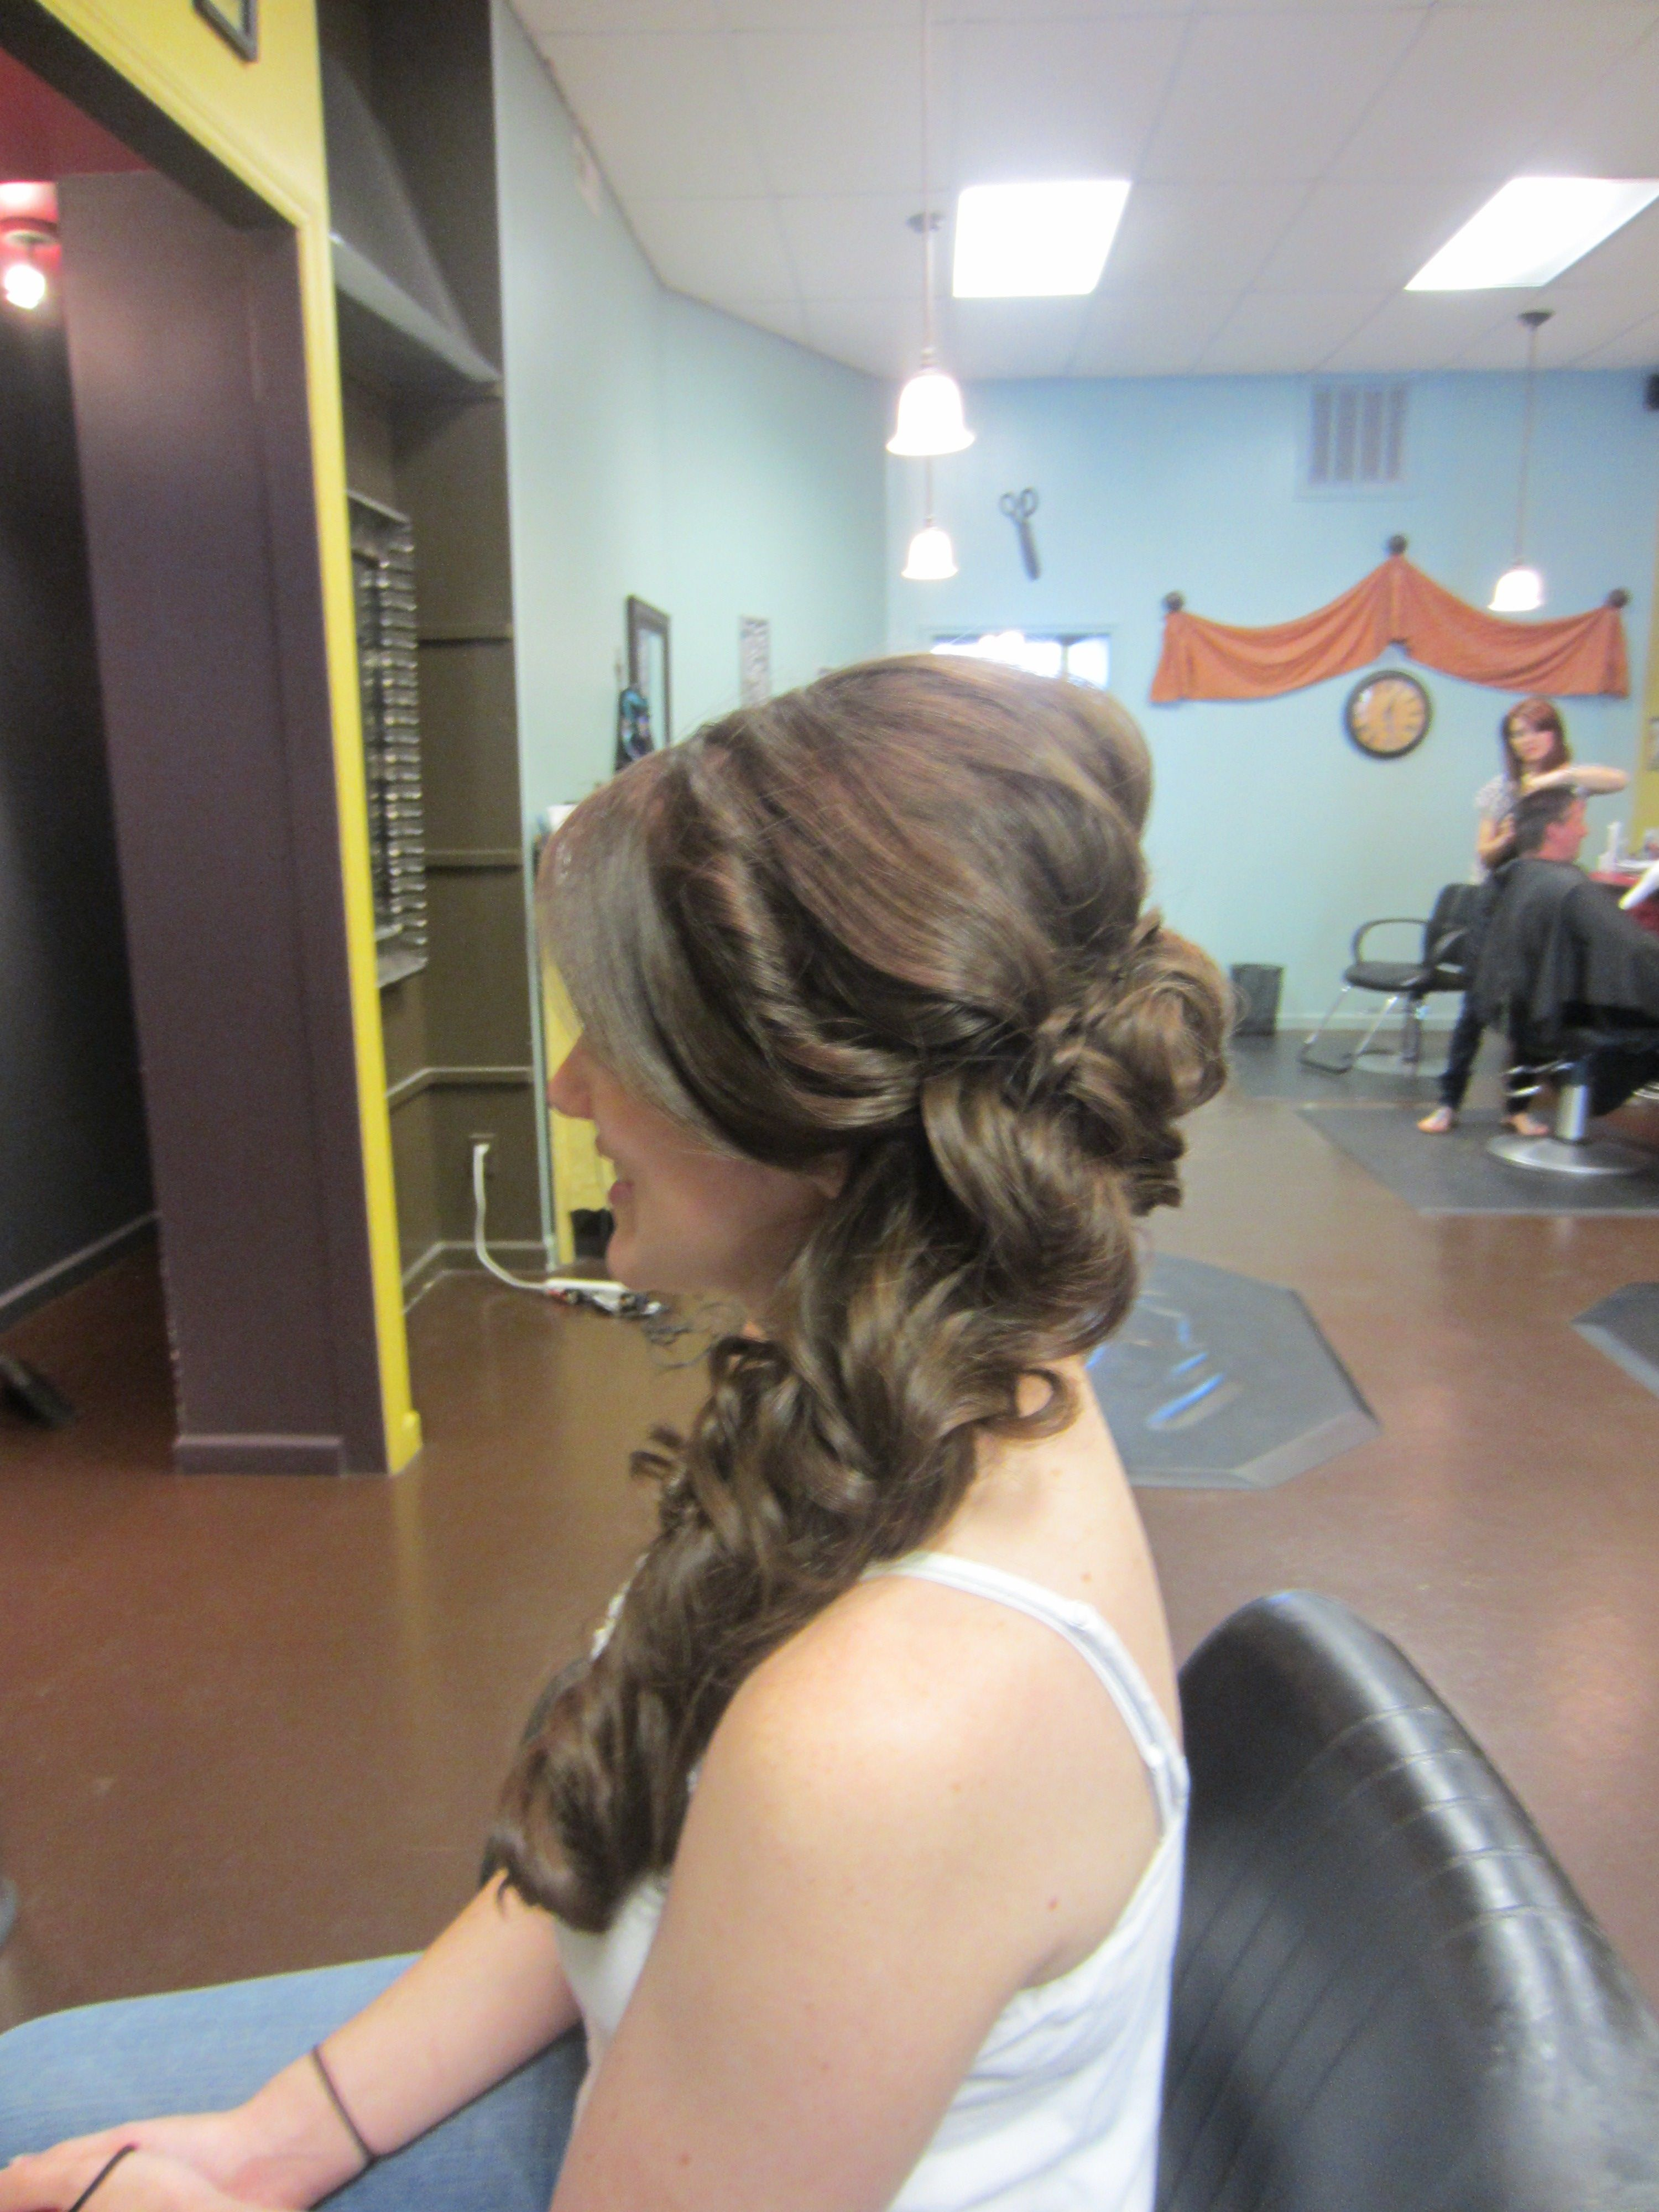 Disney's Belle from Beauty and the Beast inspired updo hairstyle for a bride. Stylist Ashley White/ So Vain Salon, Huntsville, AL